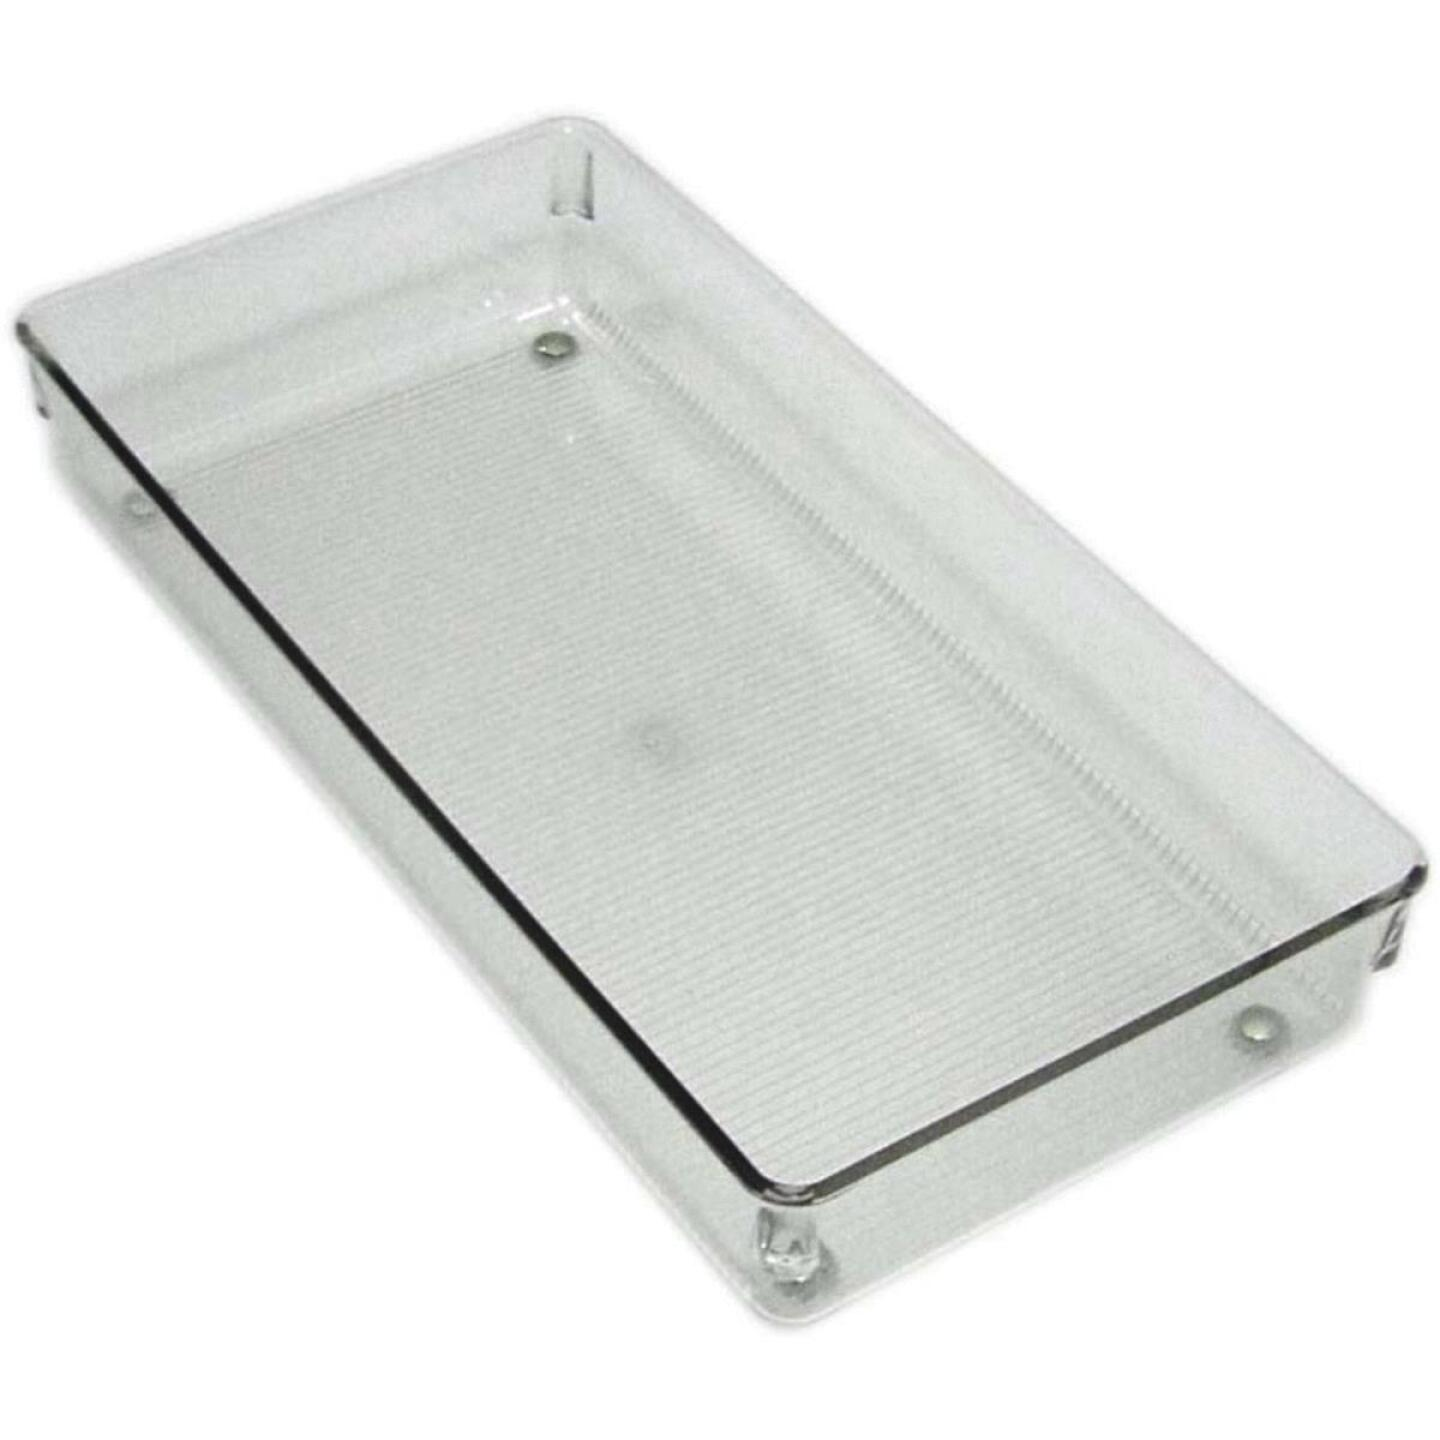 InterDesign Linus 6 In. W. x 12 In. L. x 2 In. D. Clear Drawer Organizer Tray Image 1